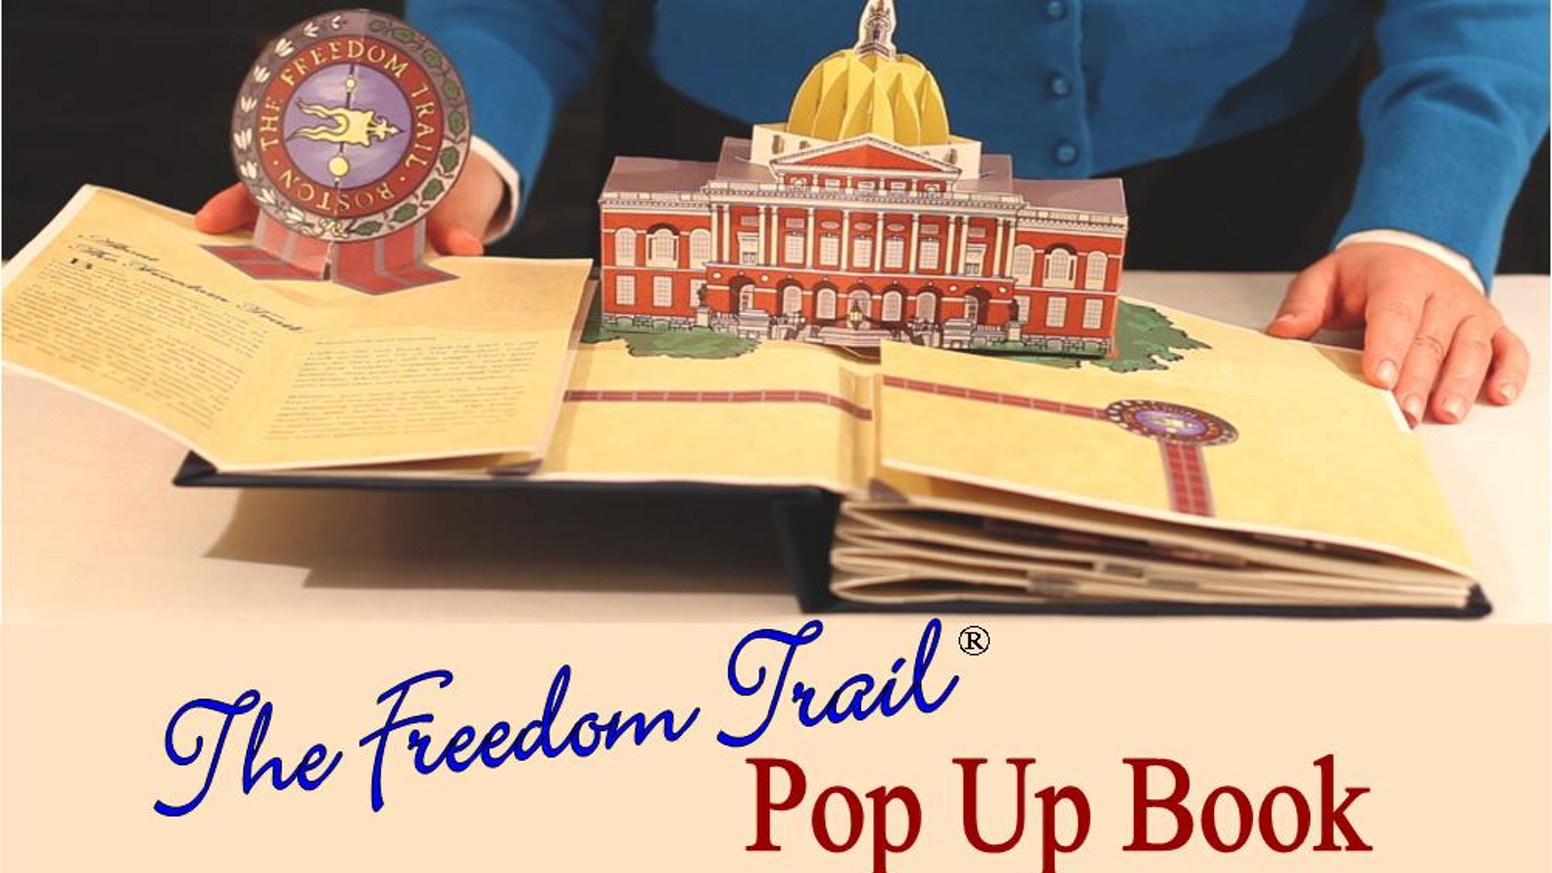 Love Boston, history, architecture, pop ups? Then The Freedom Trail® Pop Up Book - the 1st ever pop up of Boston - is for you!